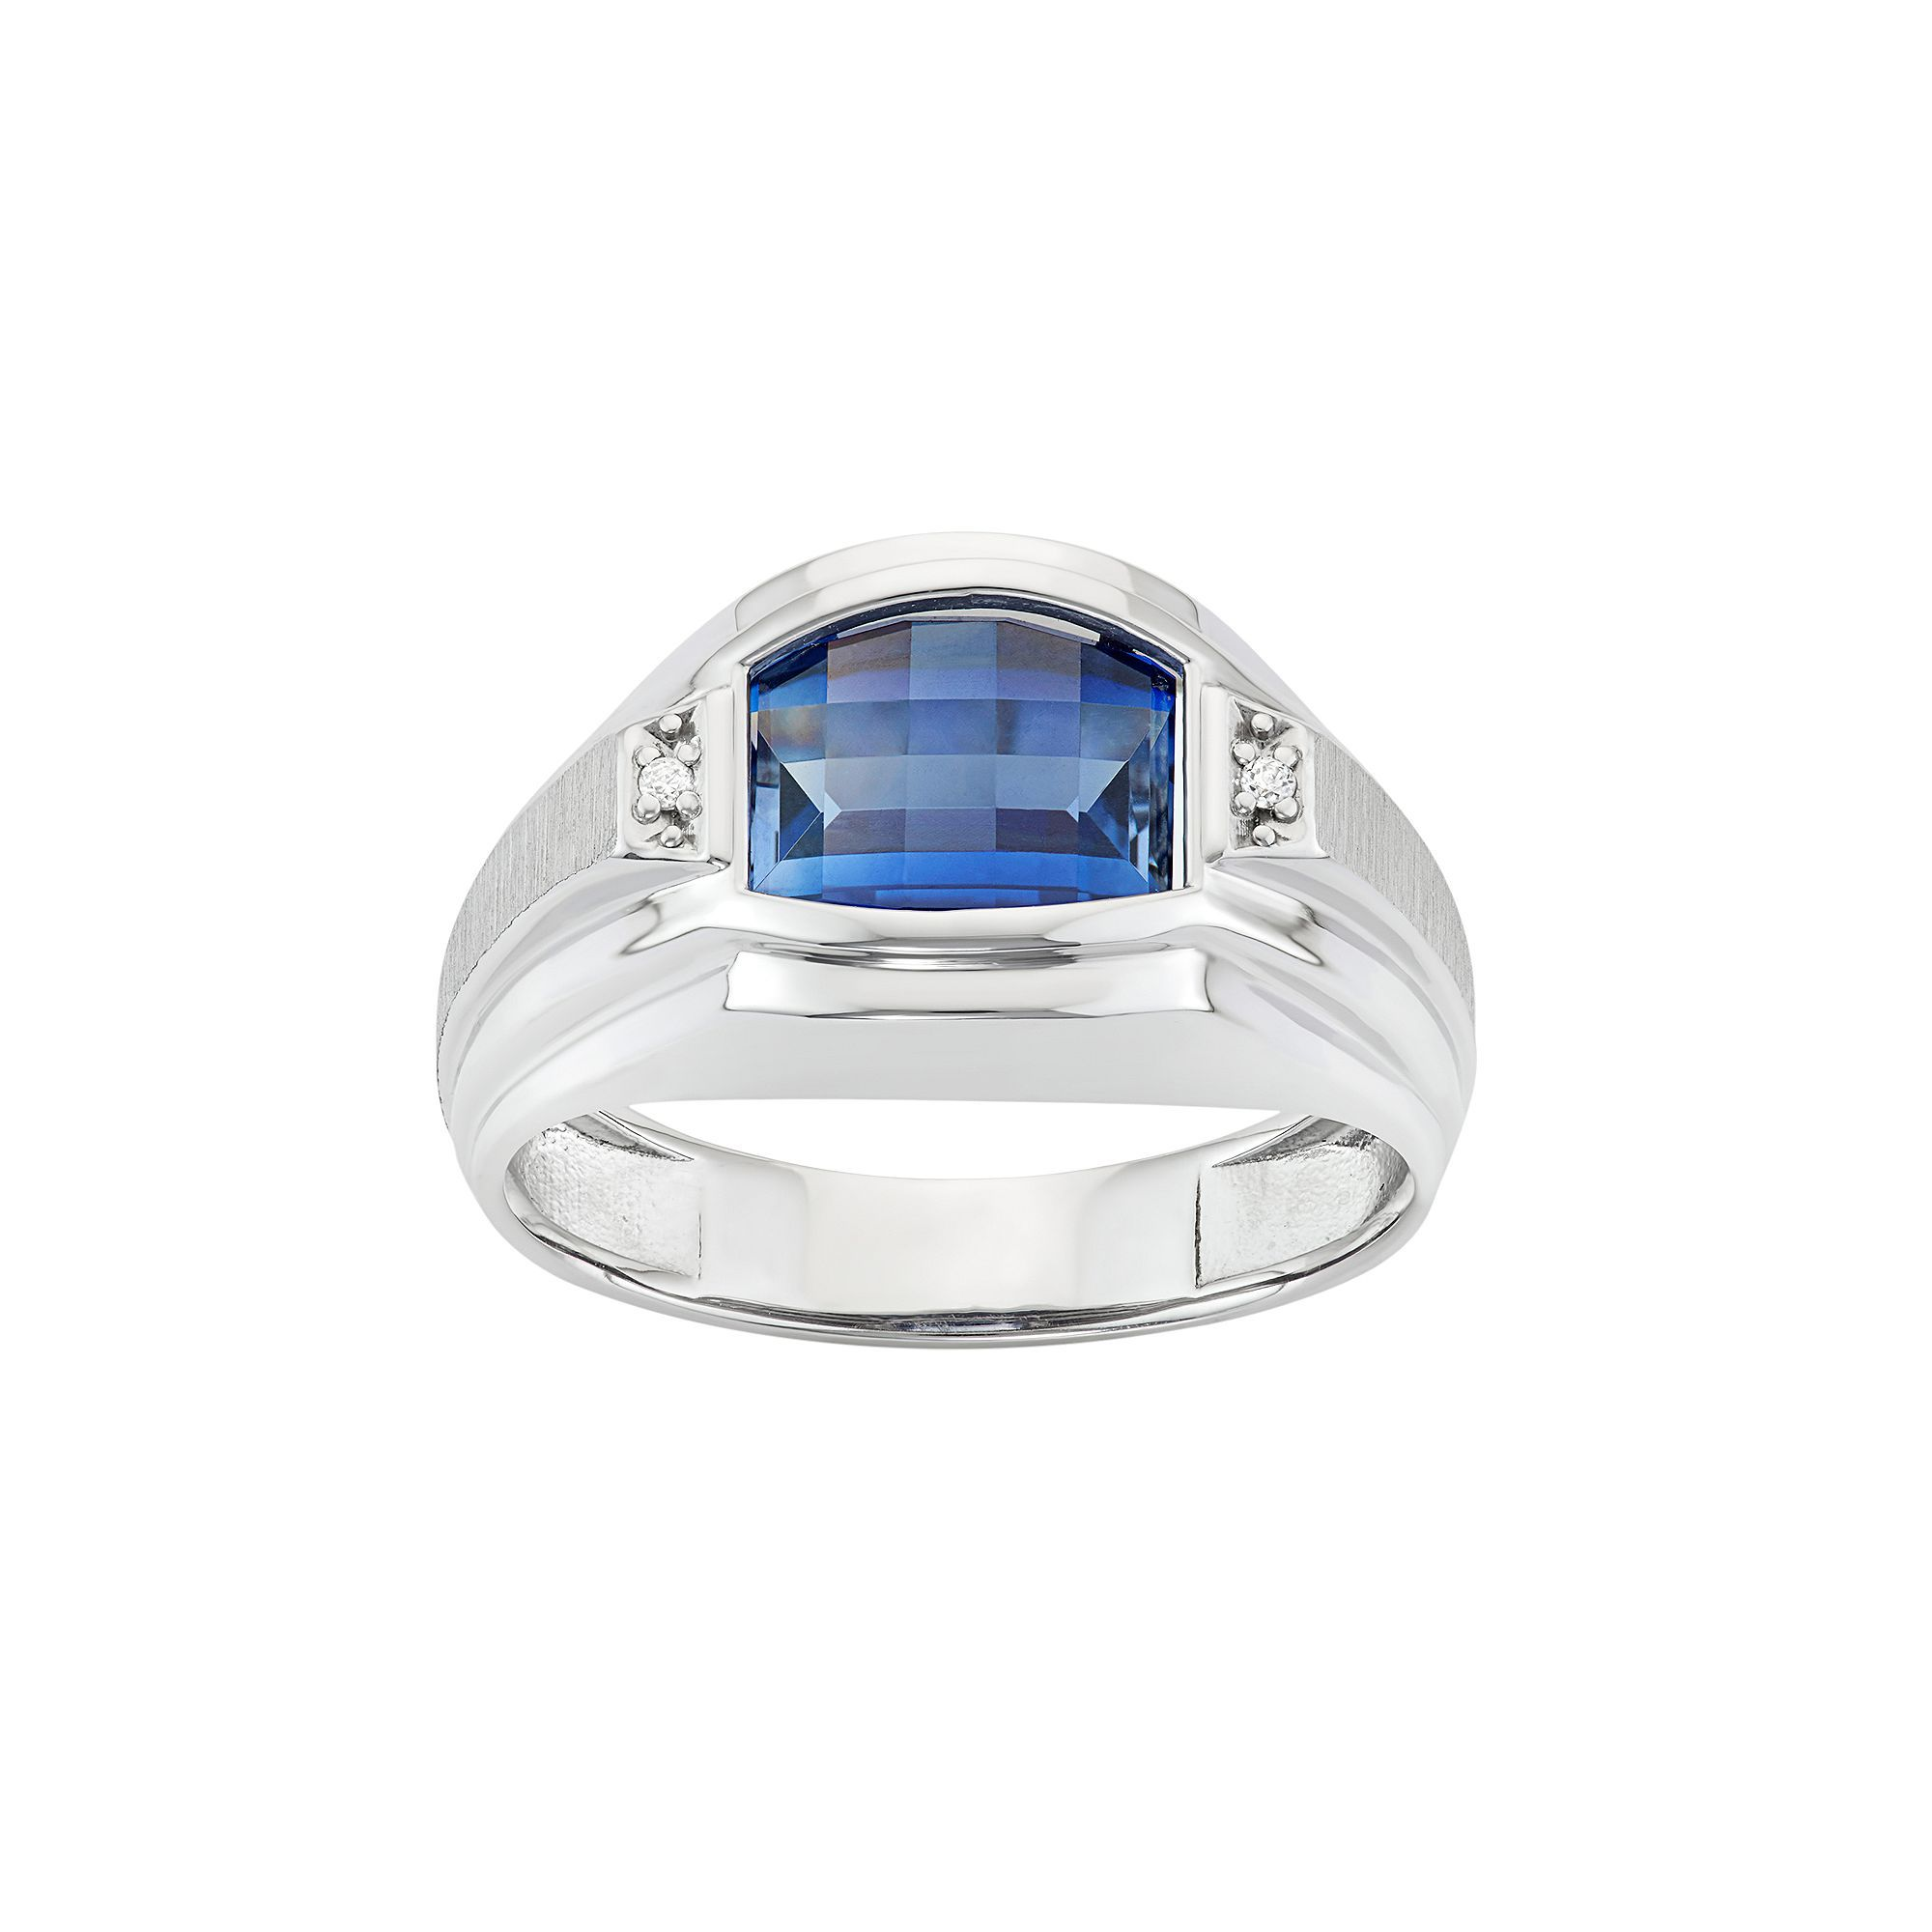 lab rings s ring silver diamond accent created sapphire sterling engagement pin men